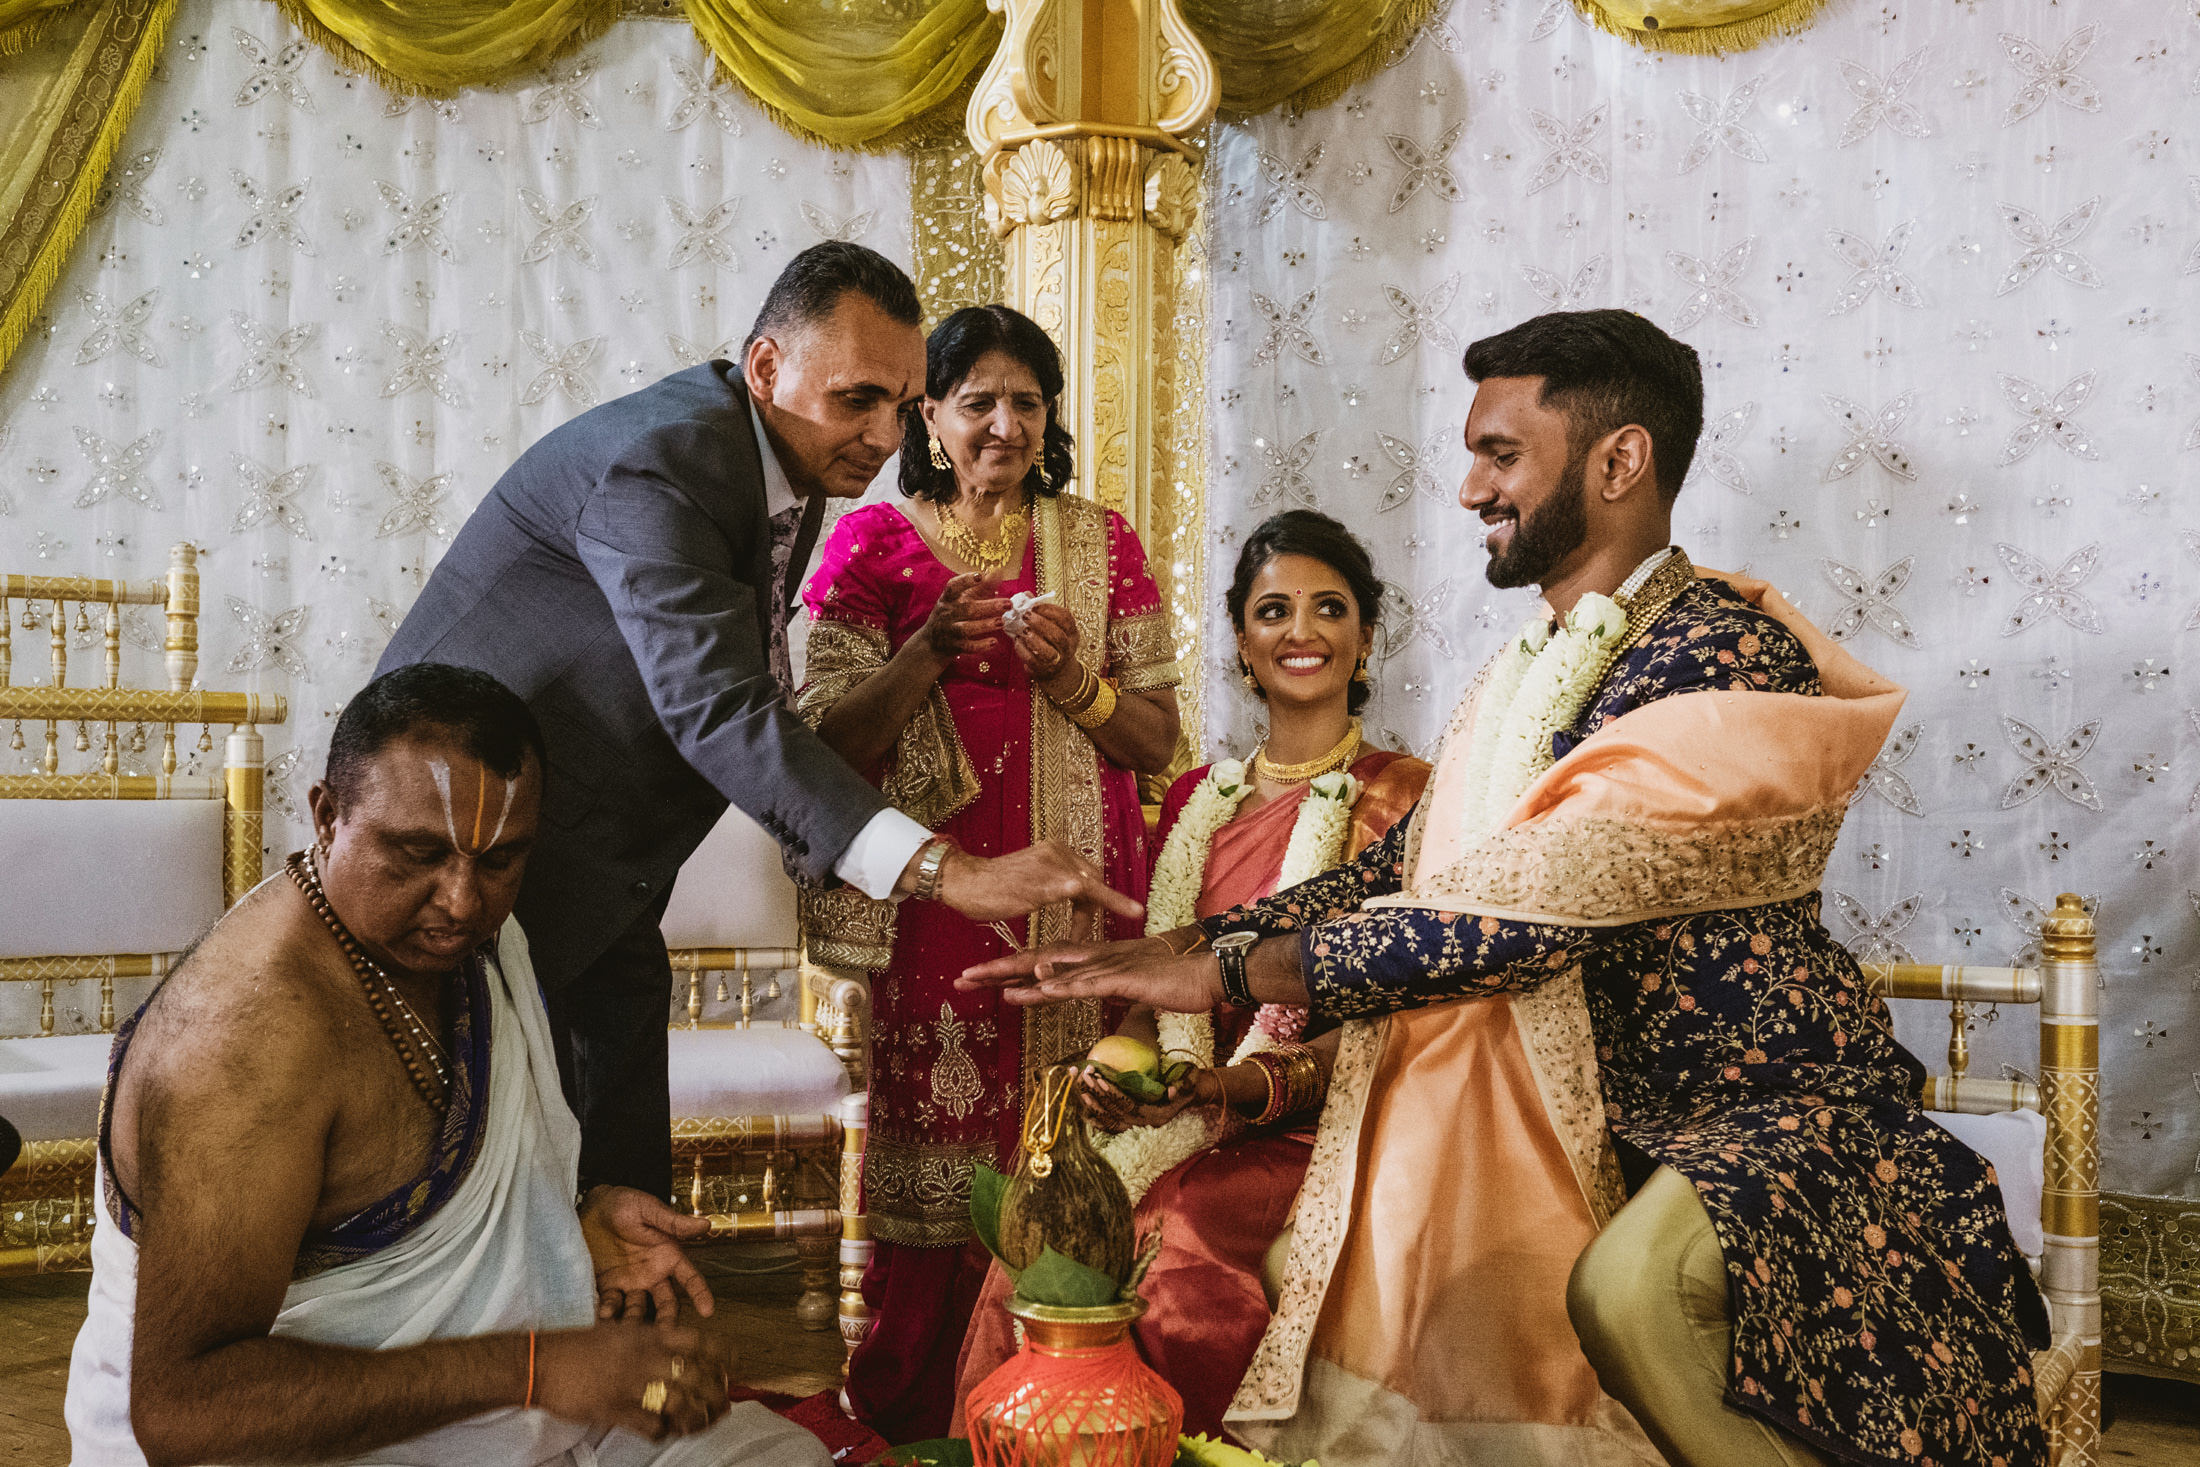 Bride and groom with family in Indian ceremony